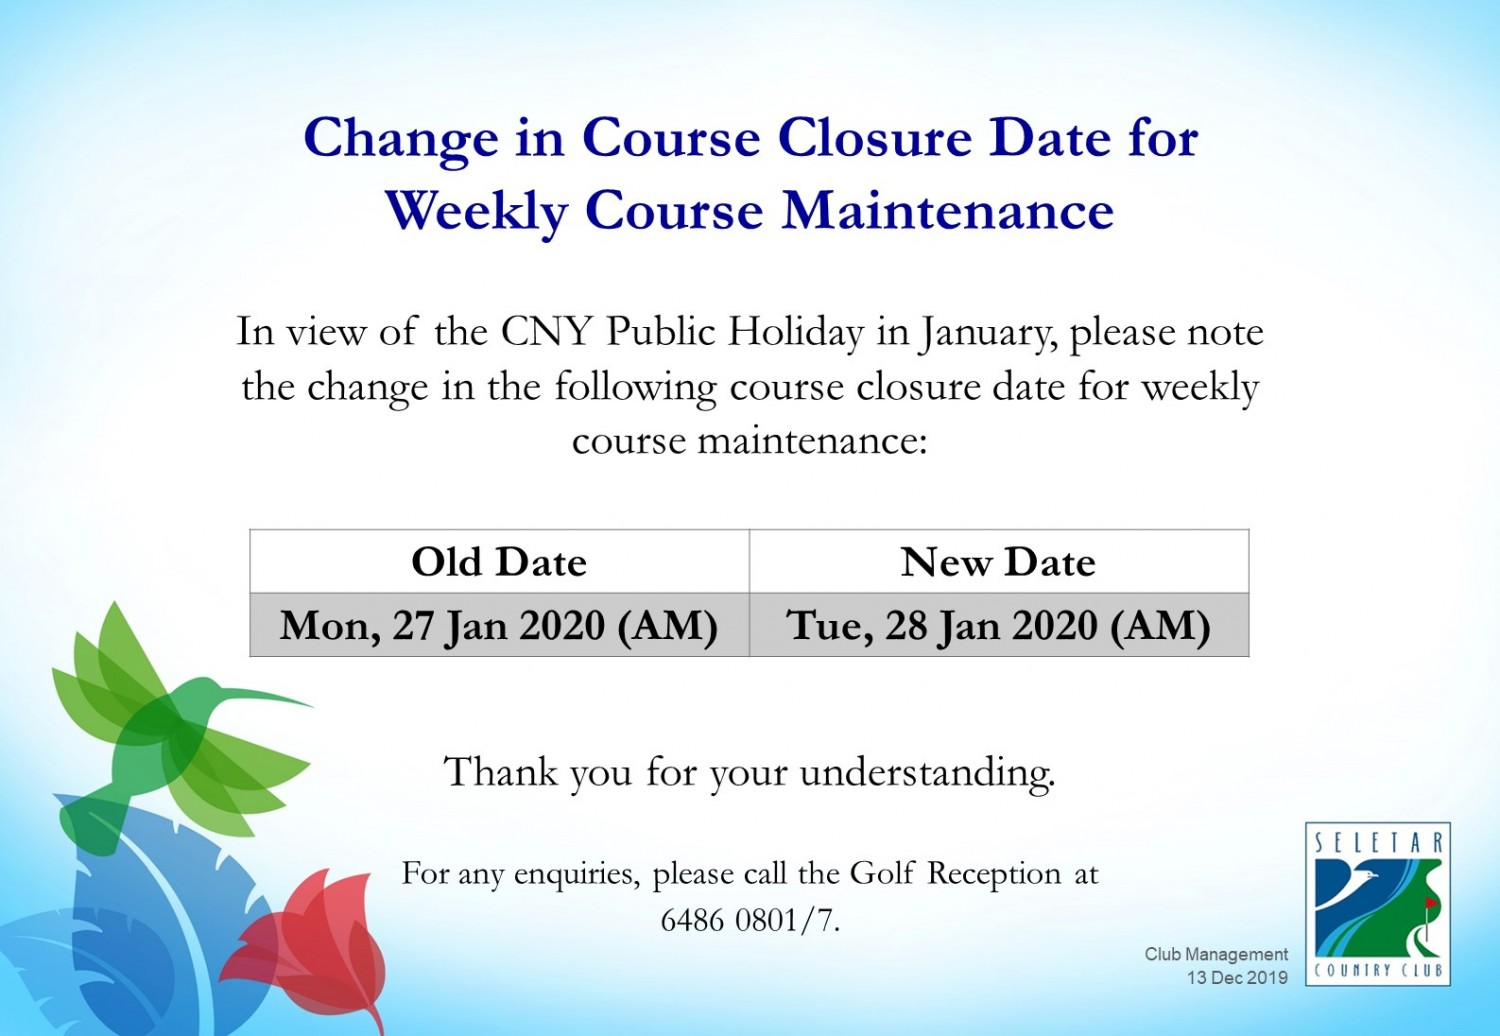 Changes in Jan course maintenance date